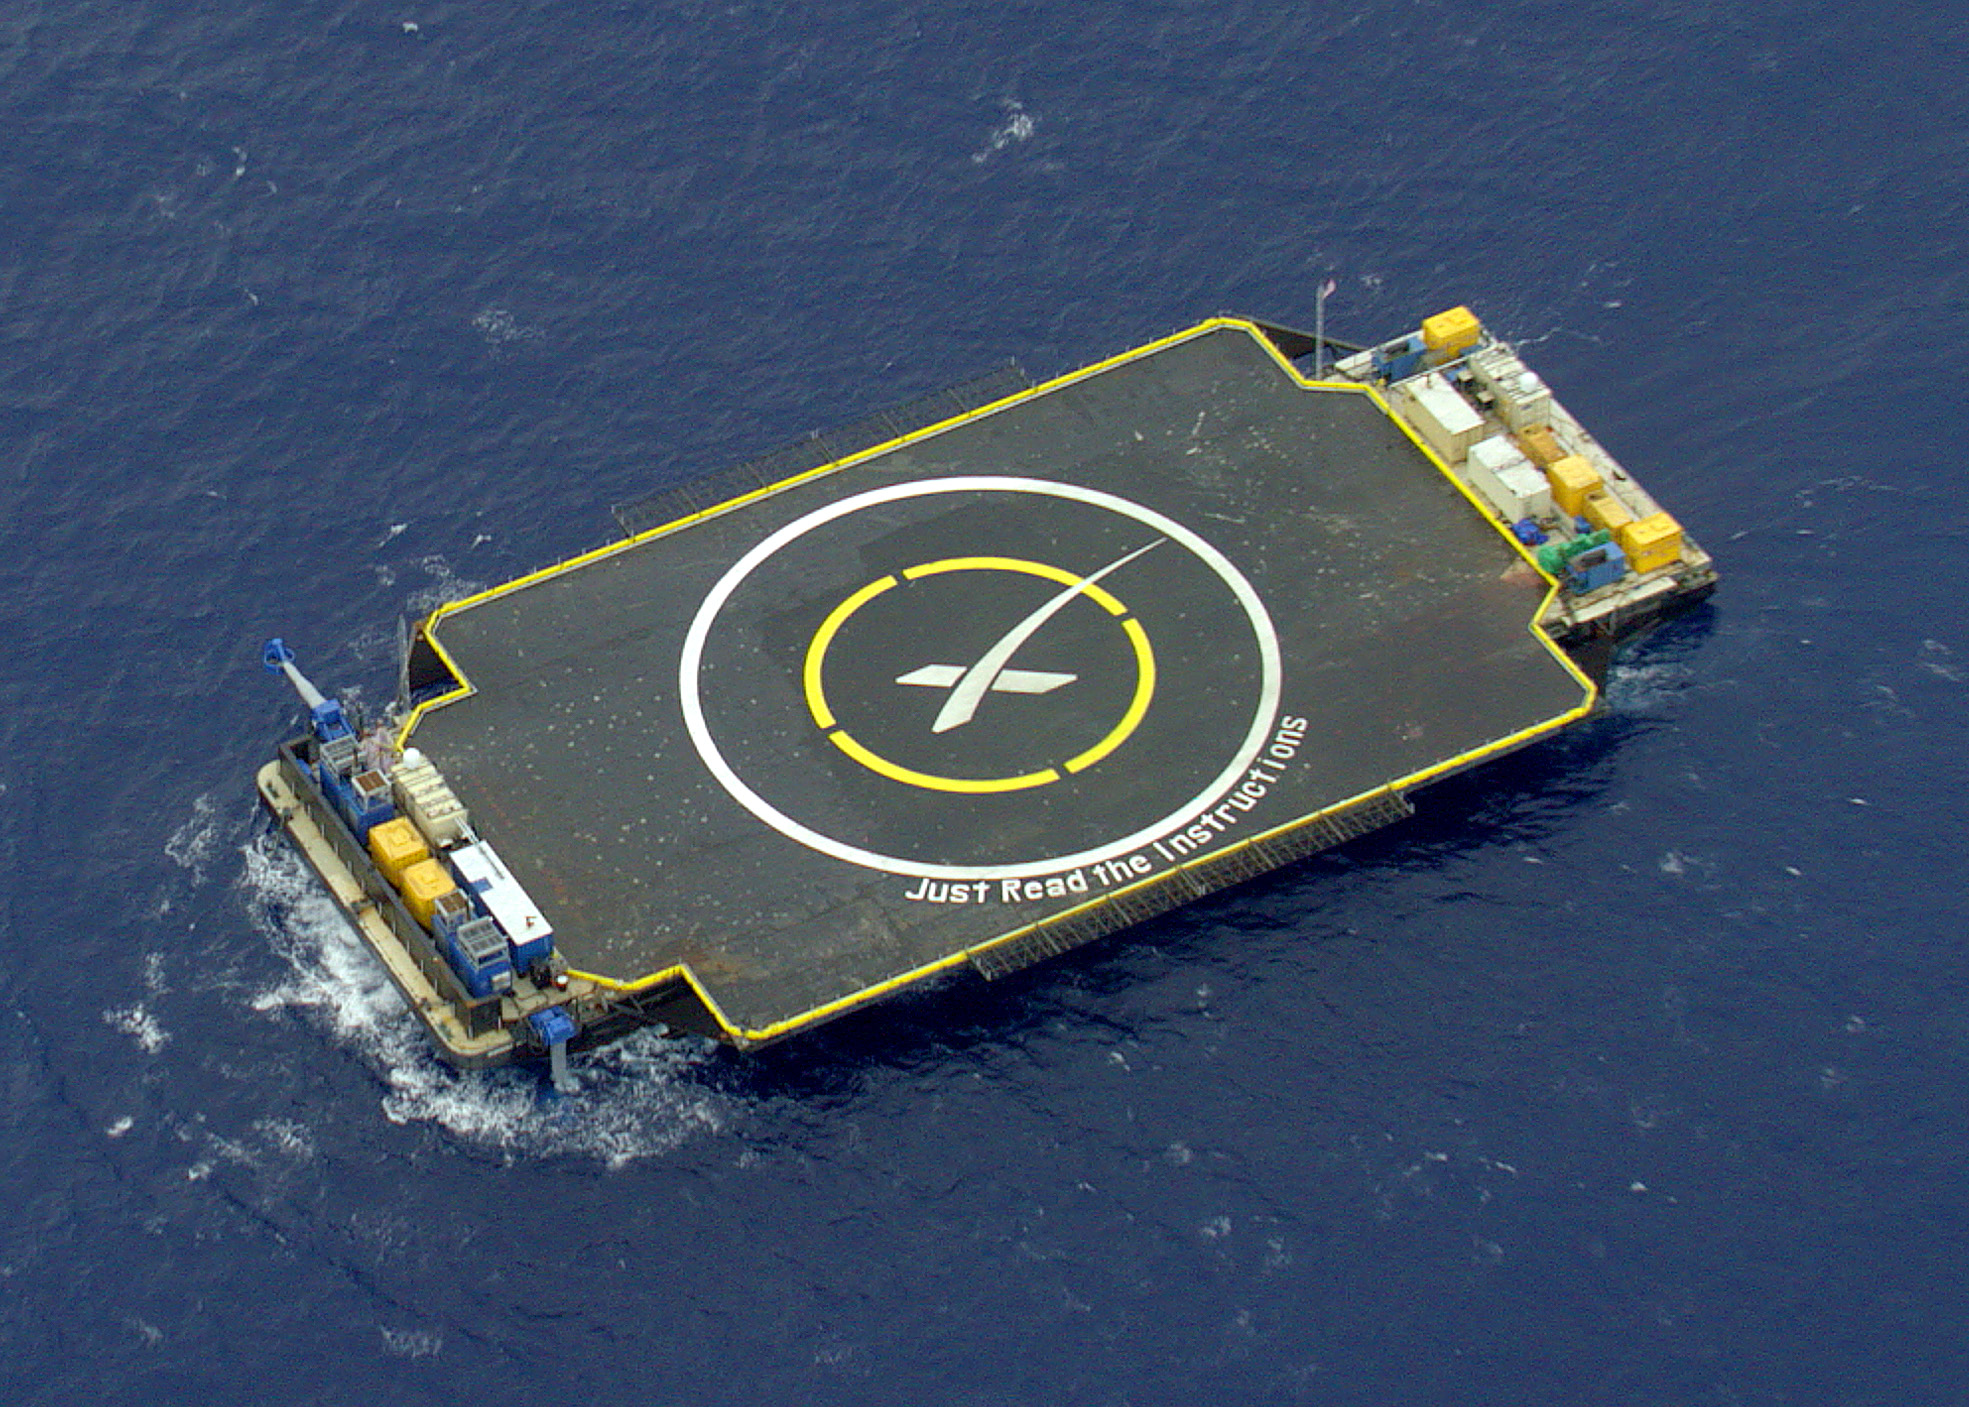 SpaceX Drone Ship - Just Read The Instructions